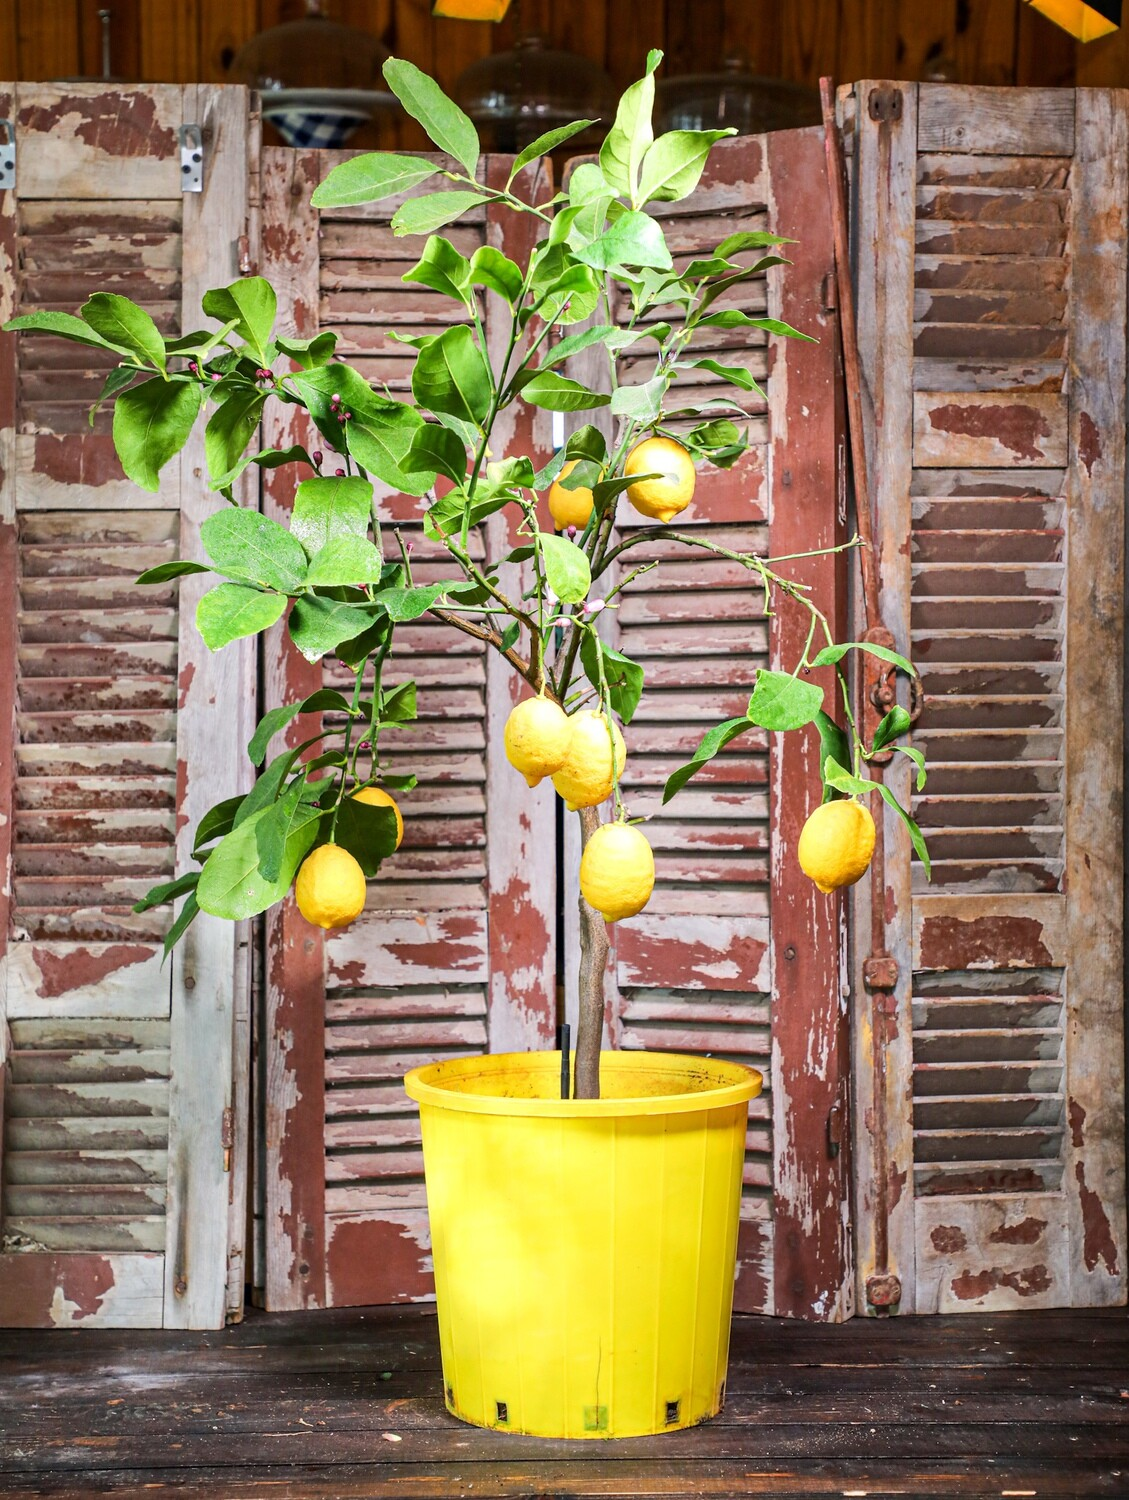 Citrus X limon 'lunario' (Plant) - Nature by Marc Beyrouthy